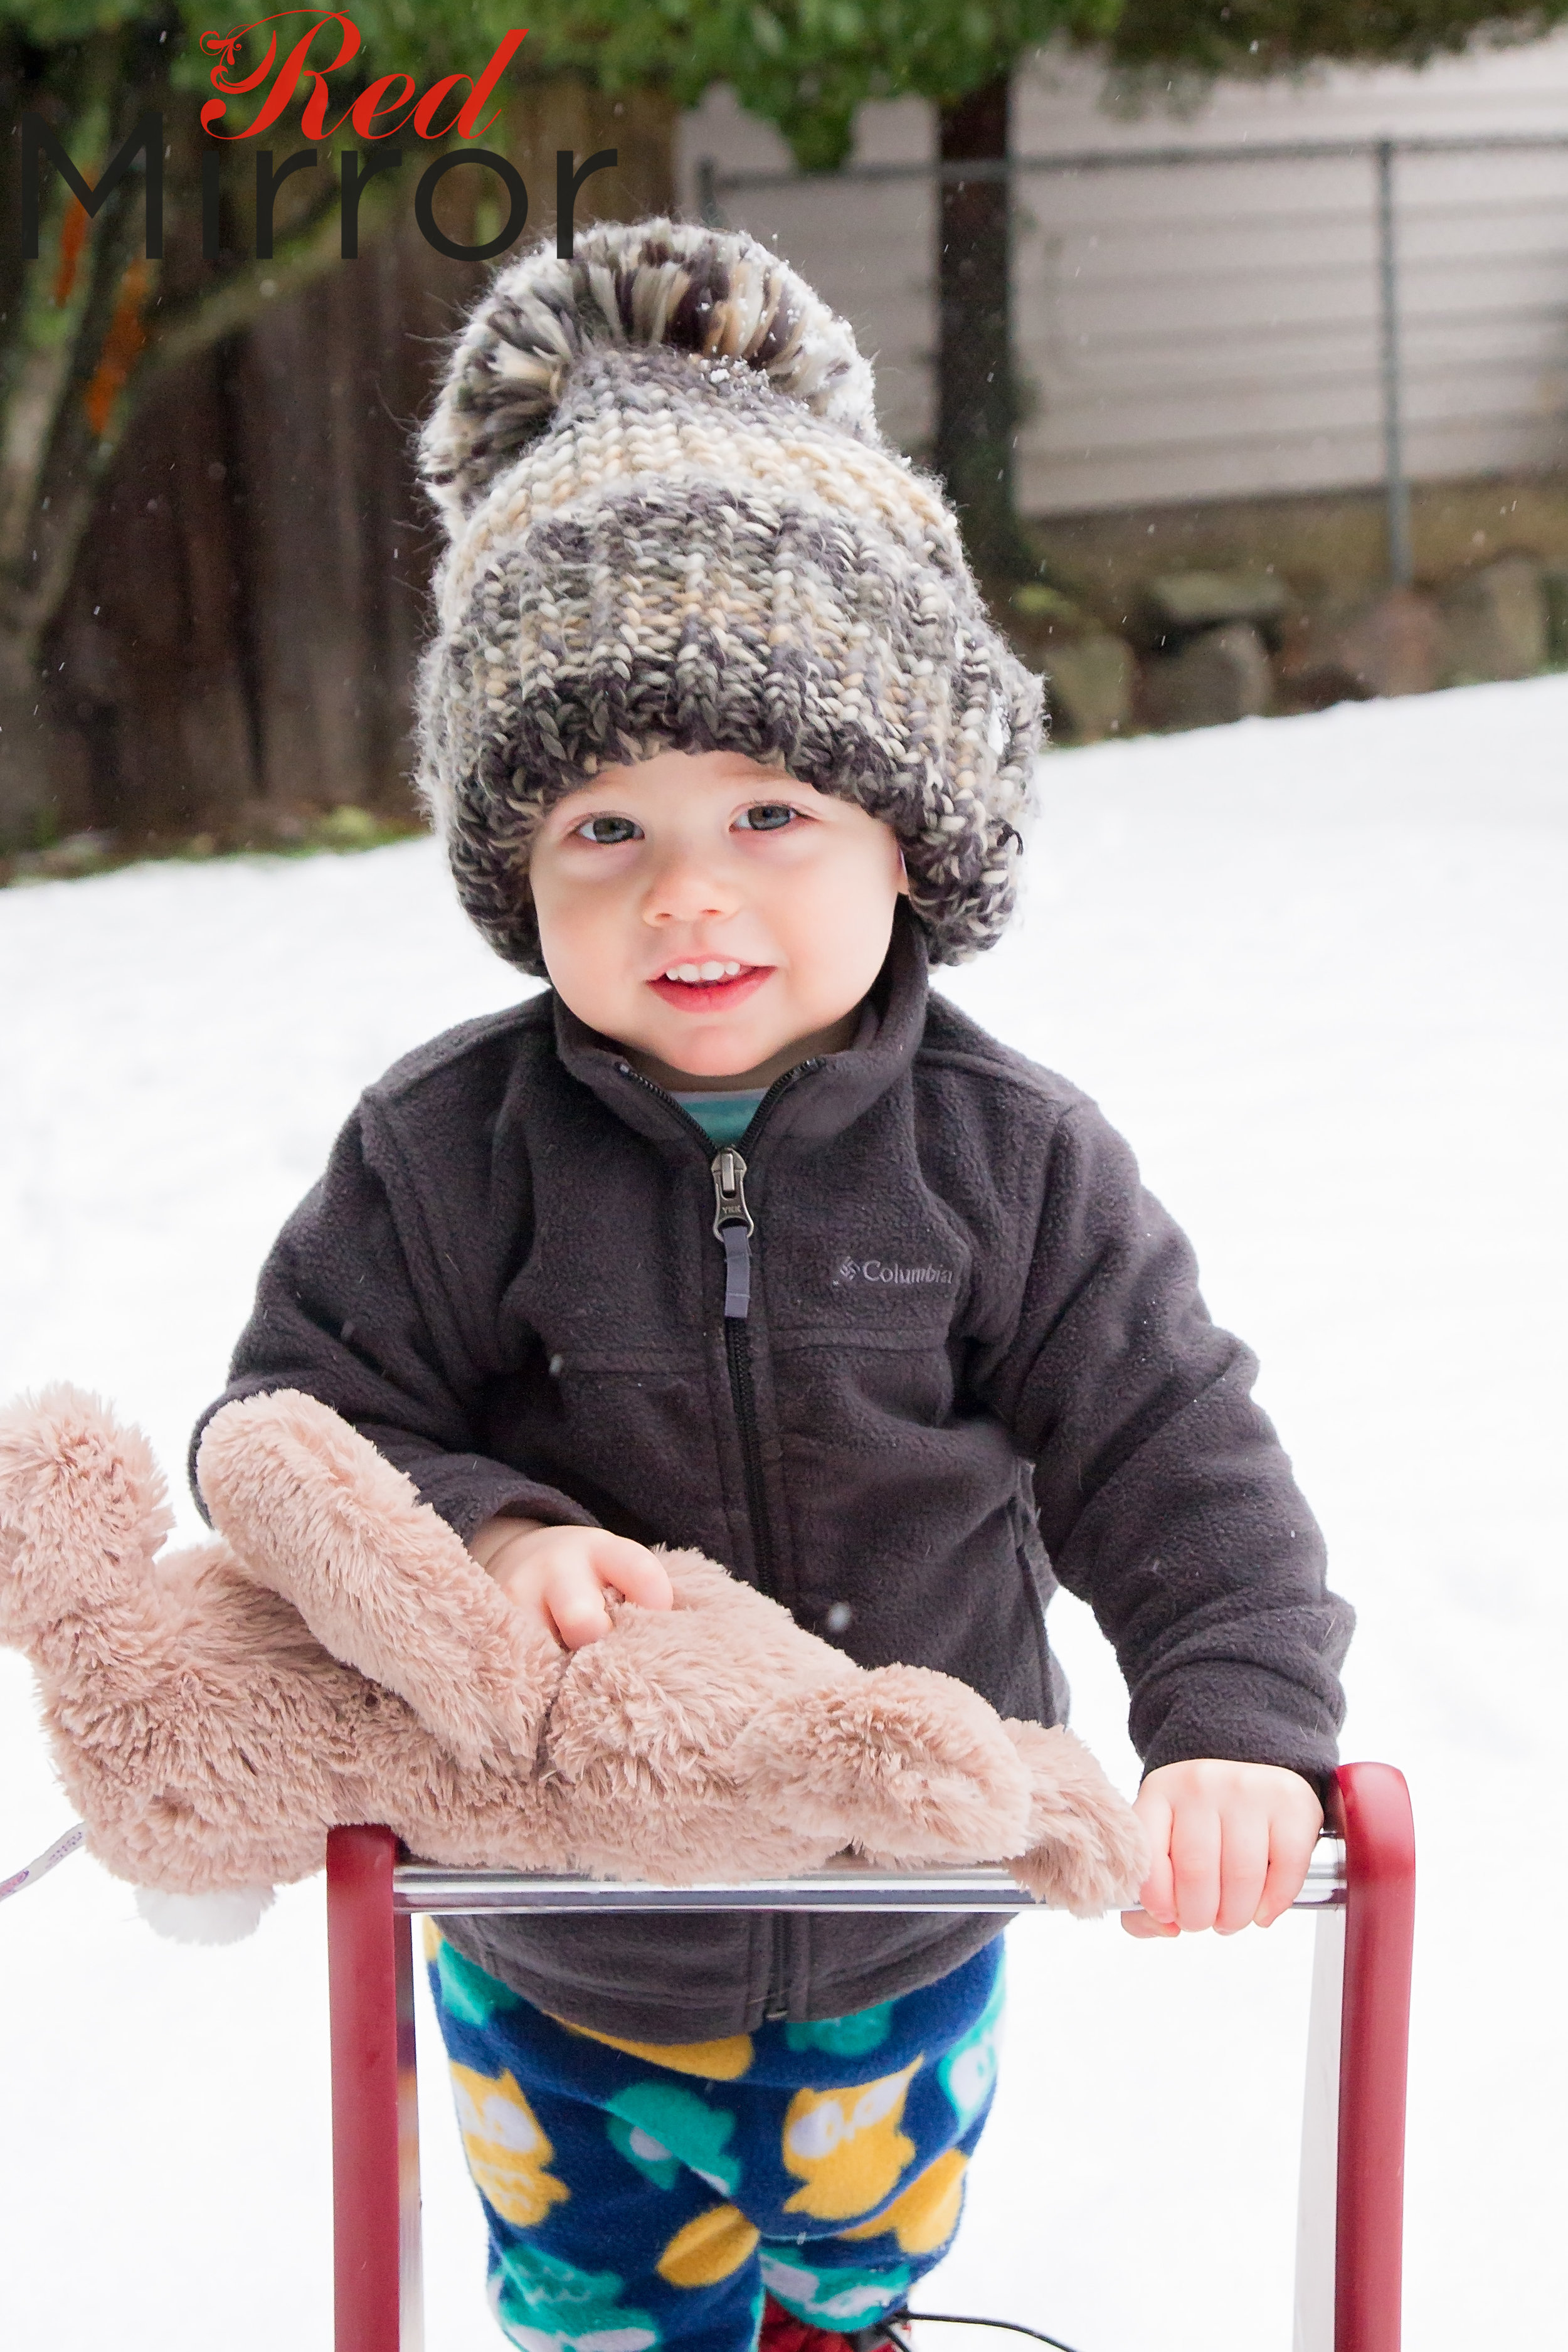 little boy in a big wooly hat, holding a cuddly bunny and a walker